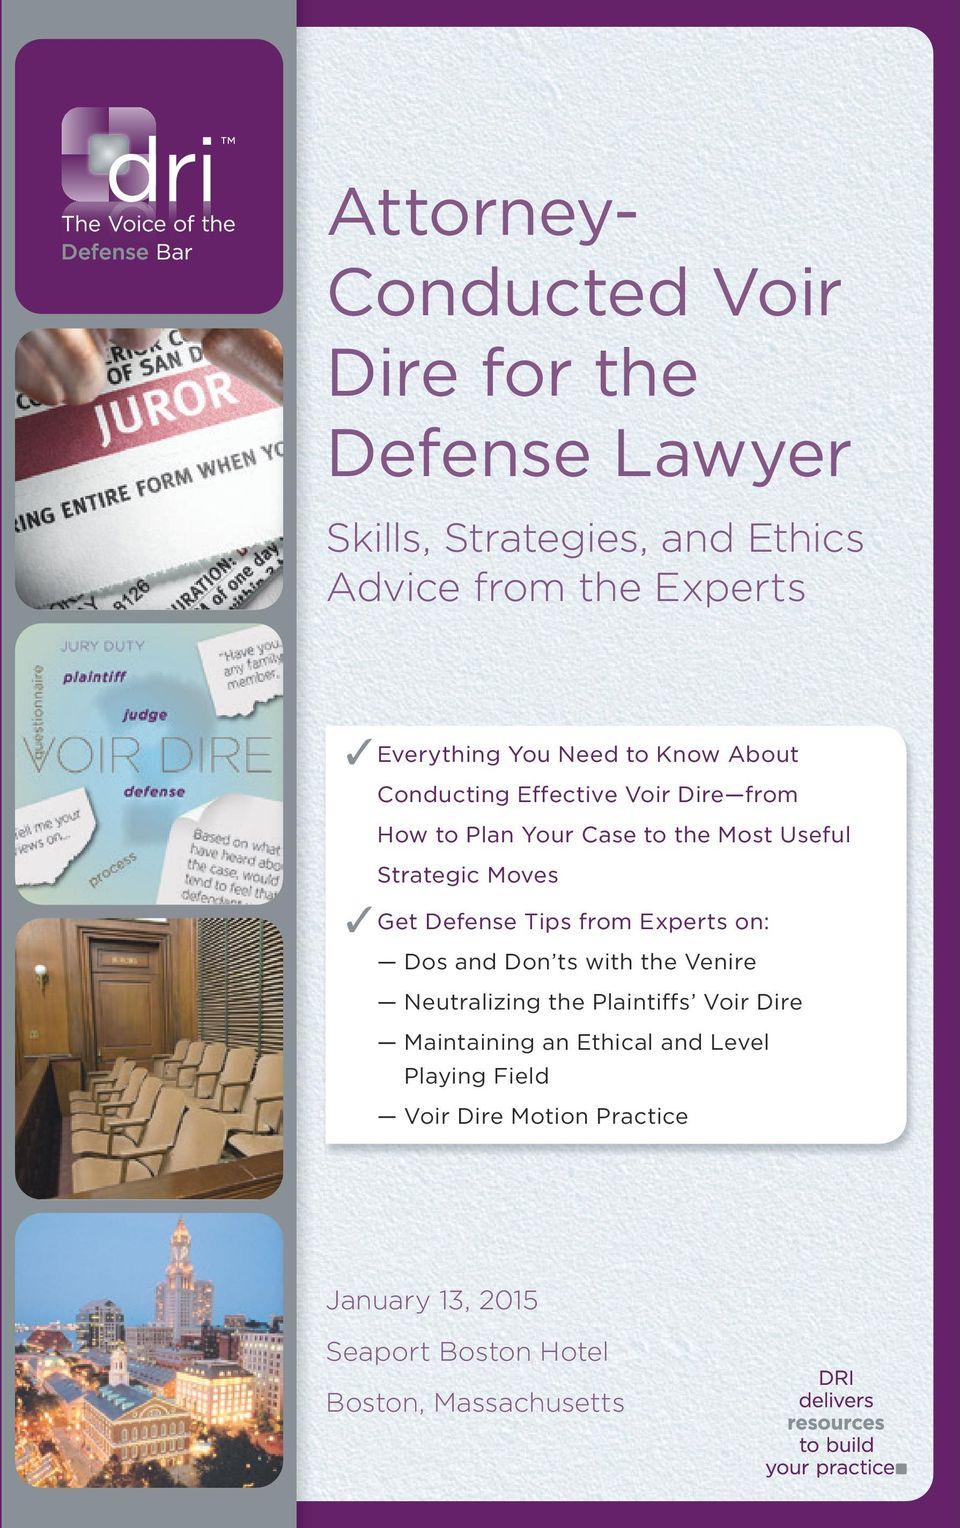 Strategic Moves Get Defense Tips from Experts on: Dos and Don ts with the Venire Neutralizing the Plaintiffs Voir